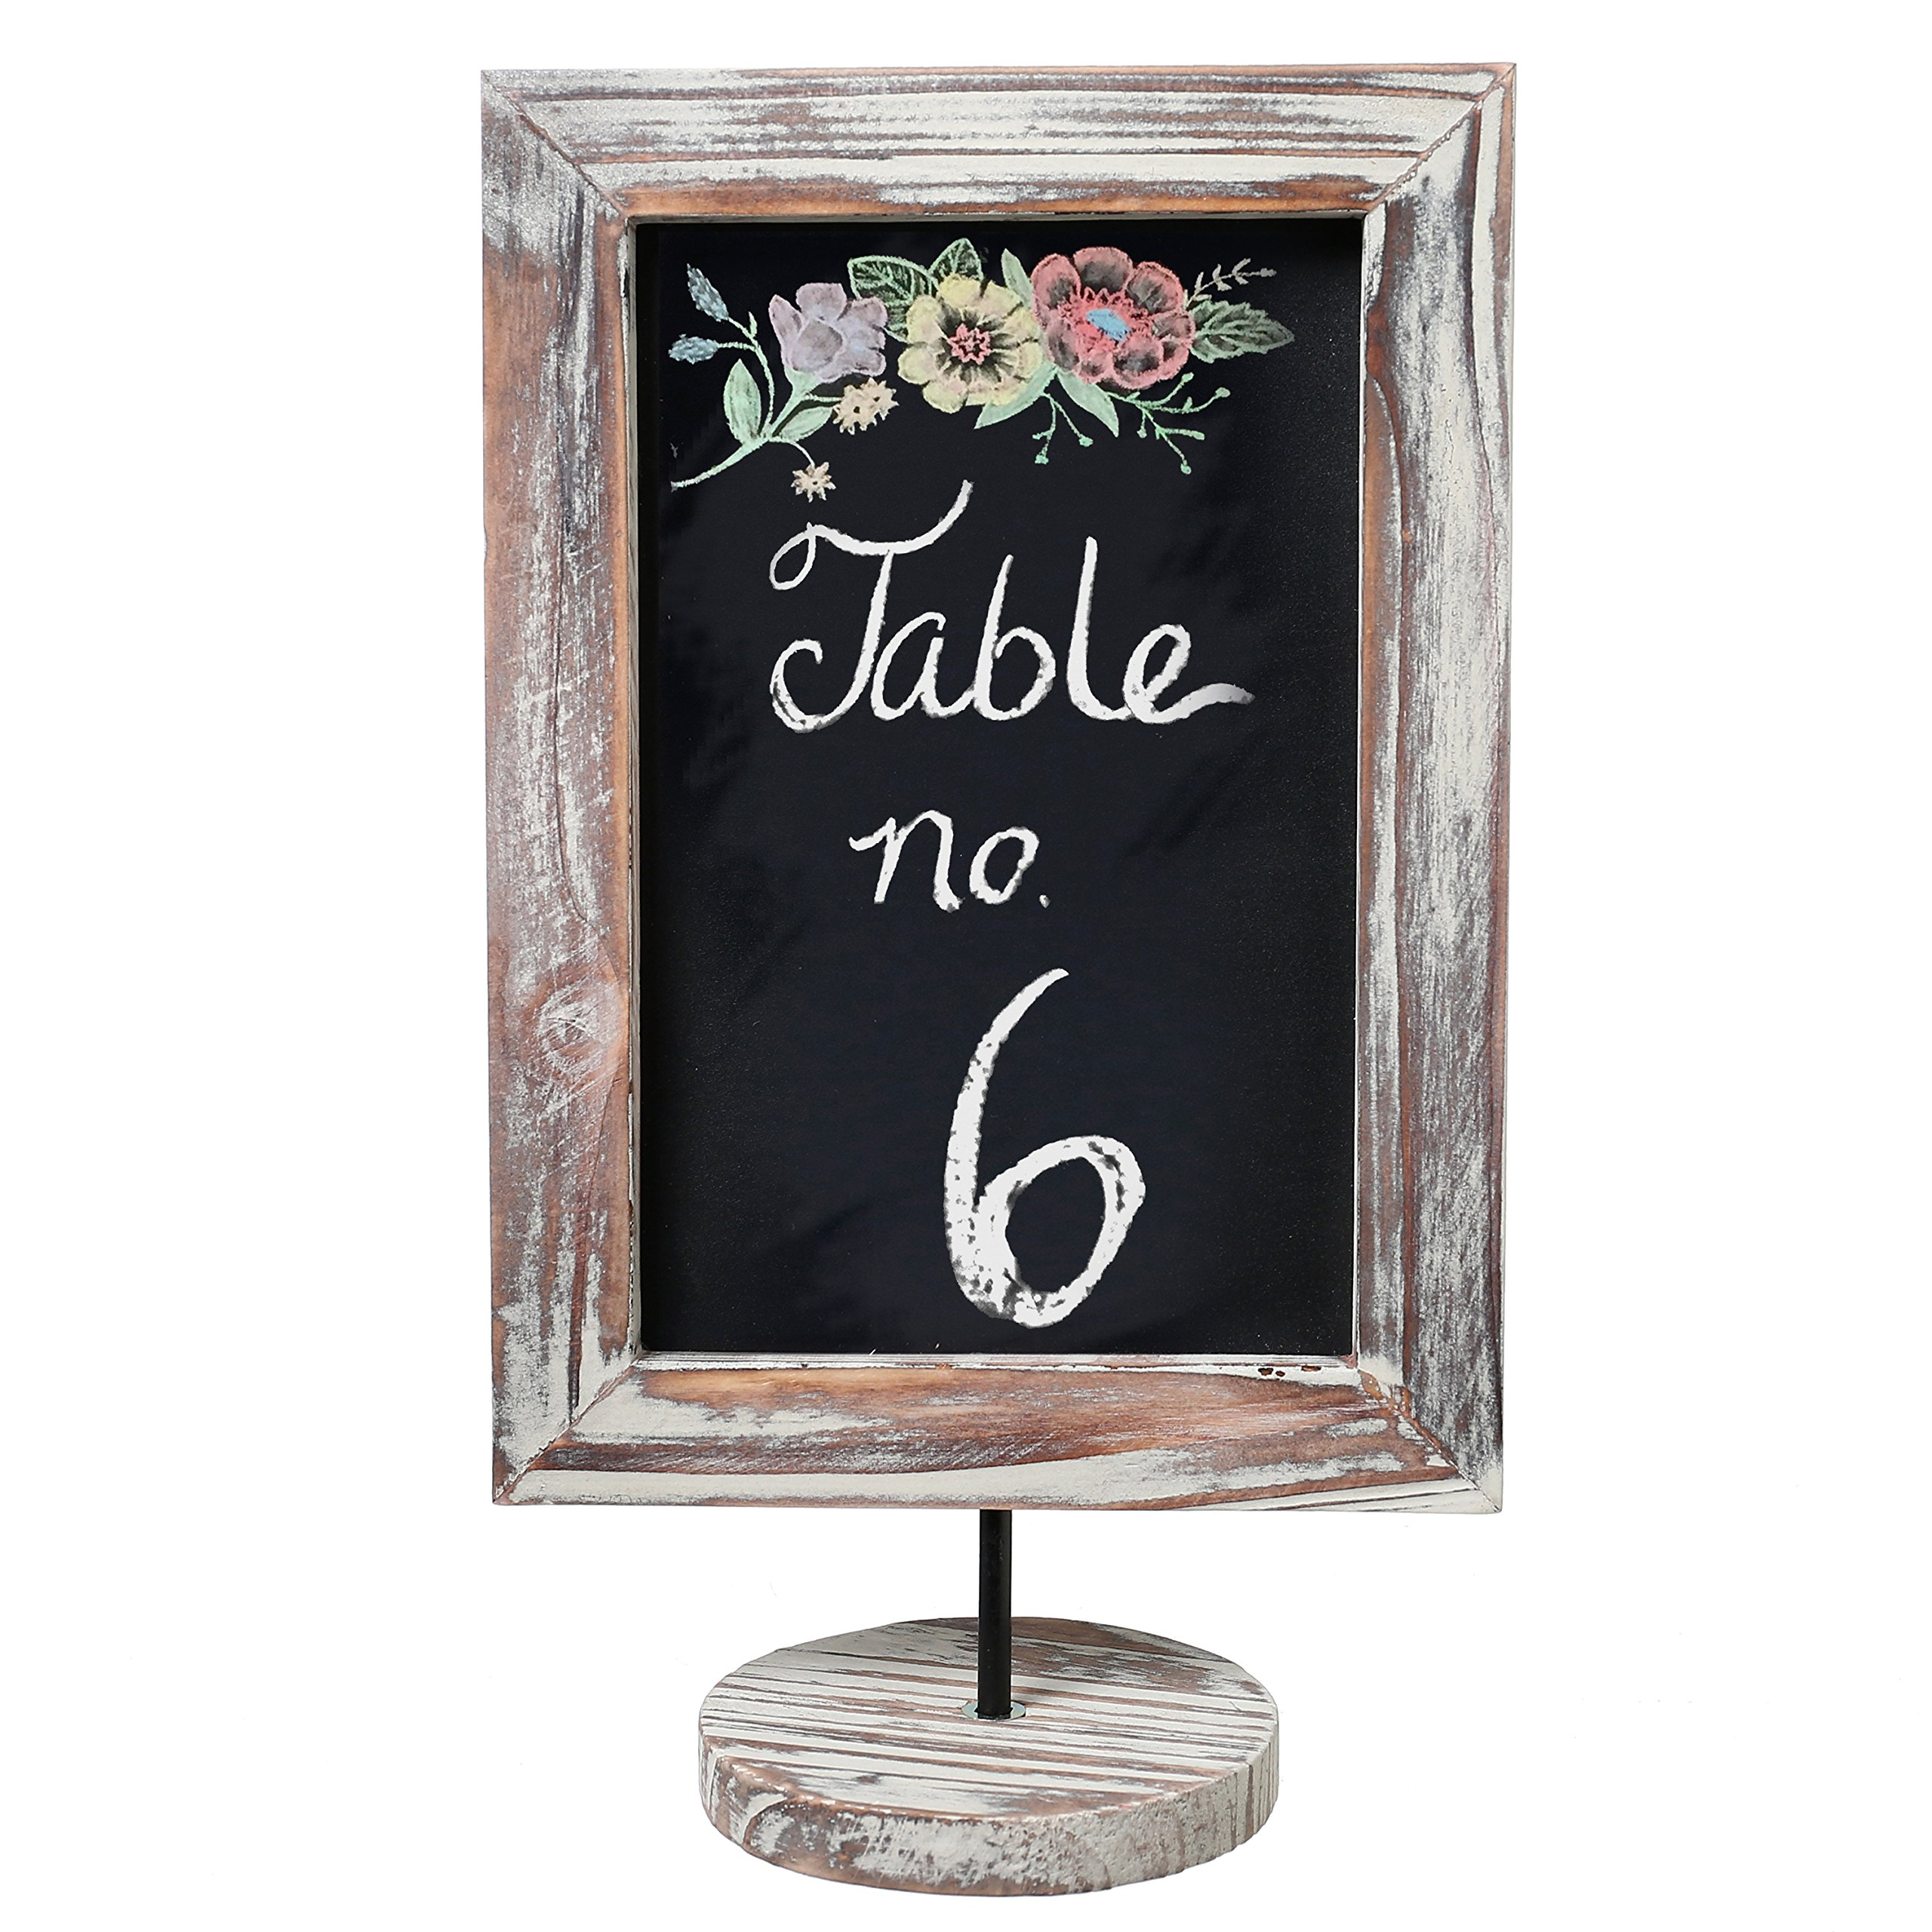 12 Inch Small Rustic Torched Wood Framed Tabletop Memo & Message Chalkboard, Cafe Menu Board Sign